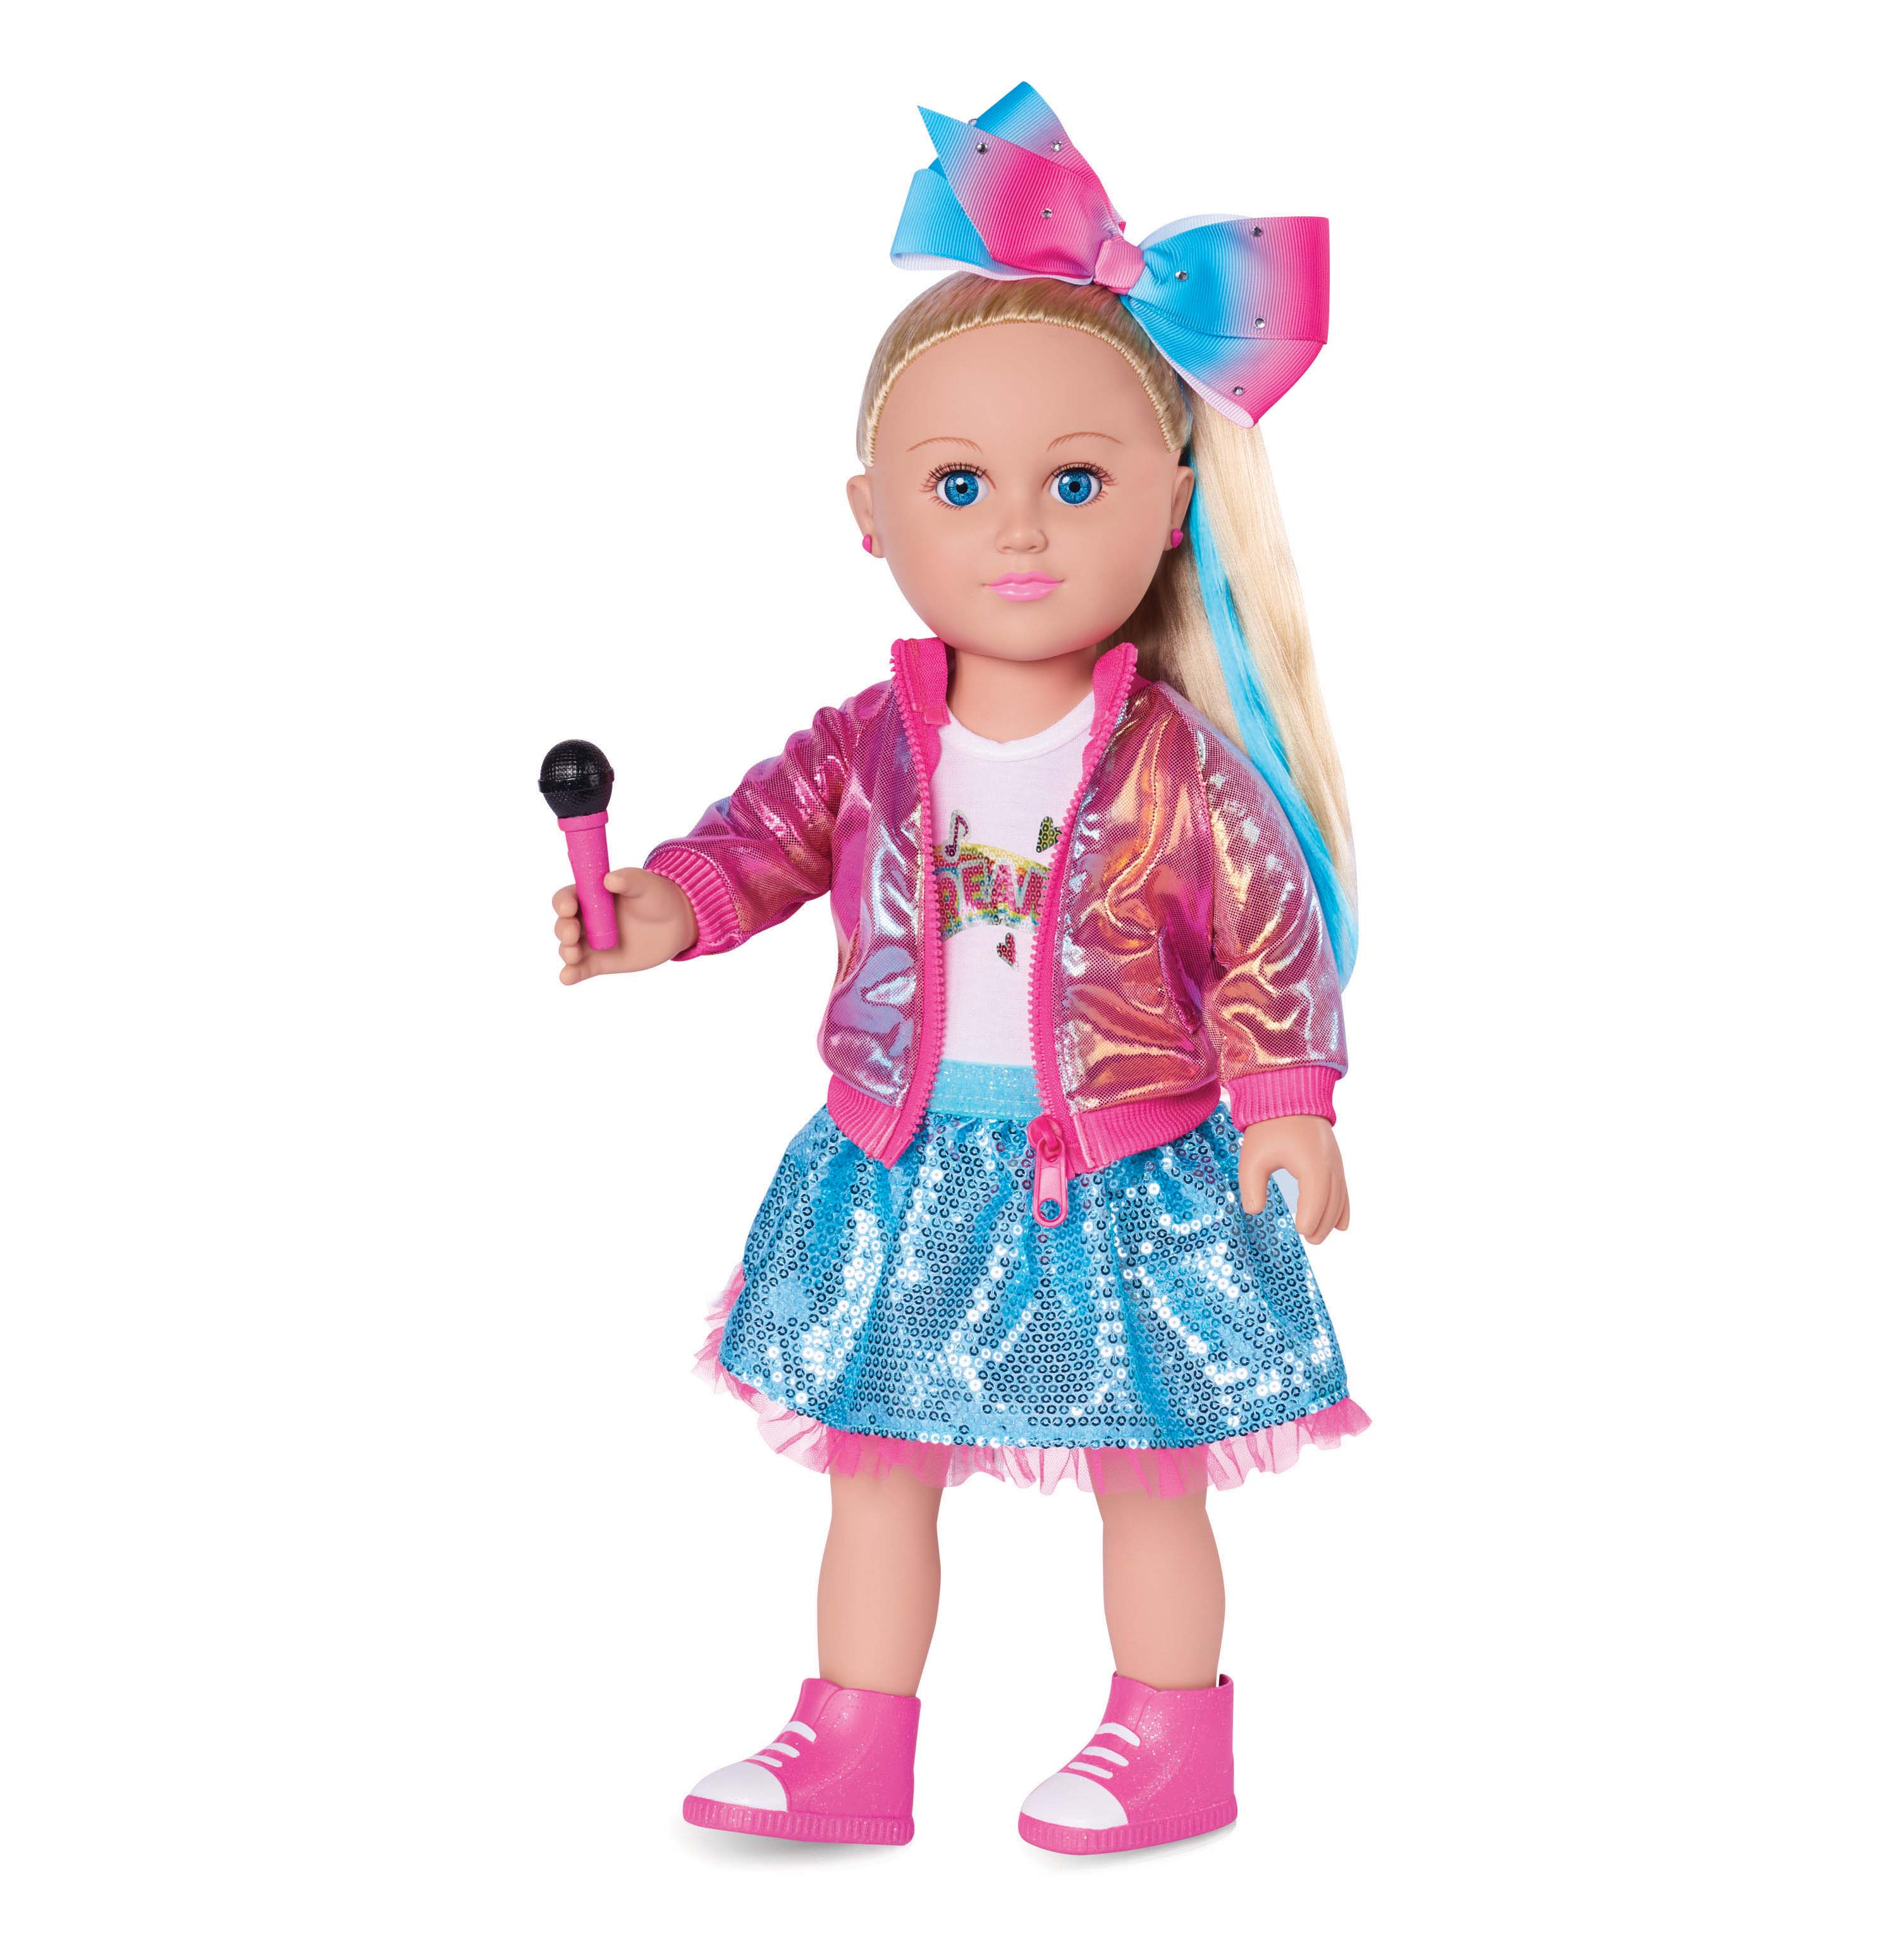 Baby Shark 18 Inch Tall Musical Doll With Closing Eyes Kids Birthday Gift